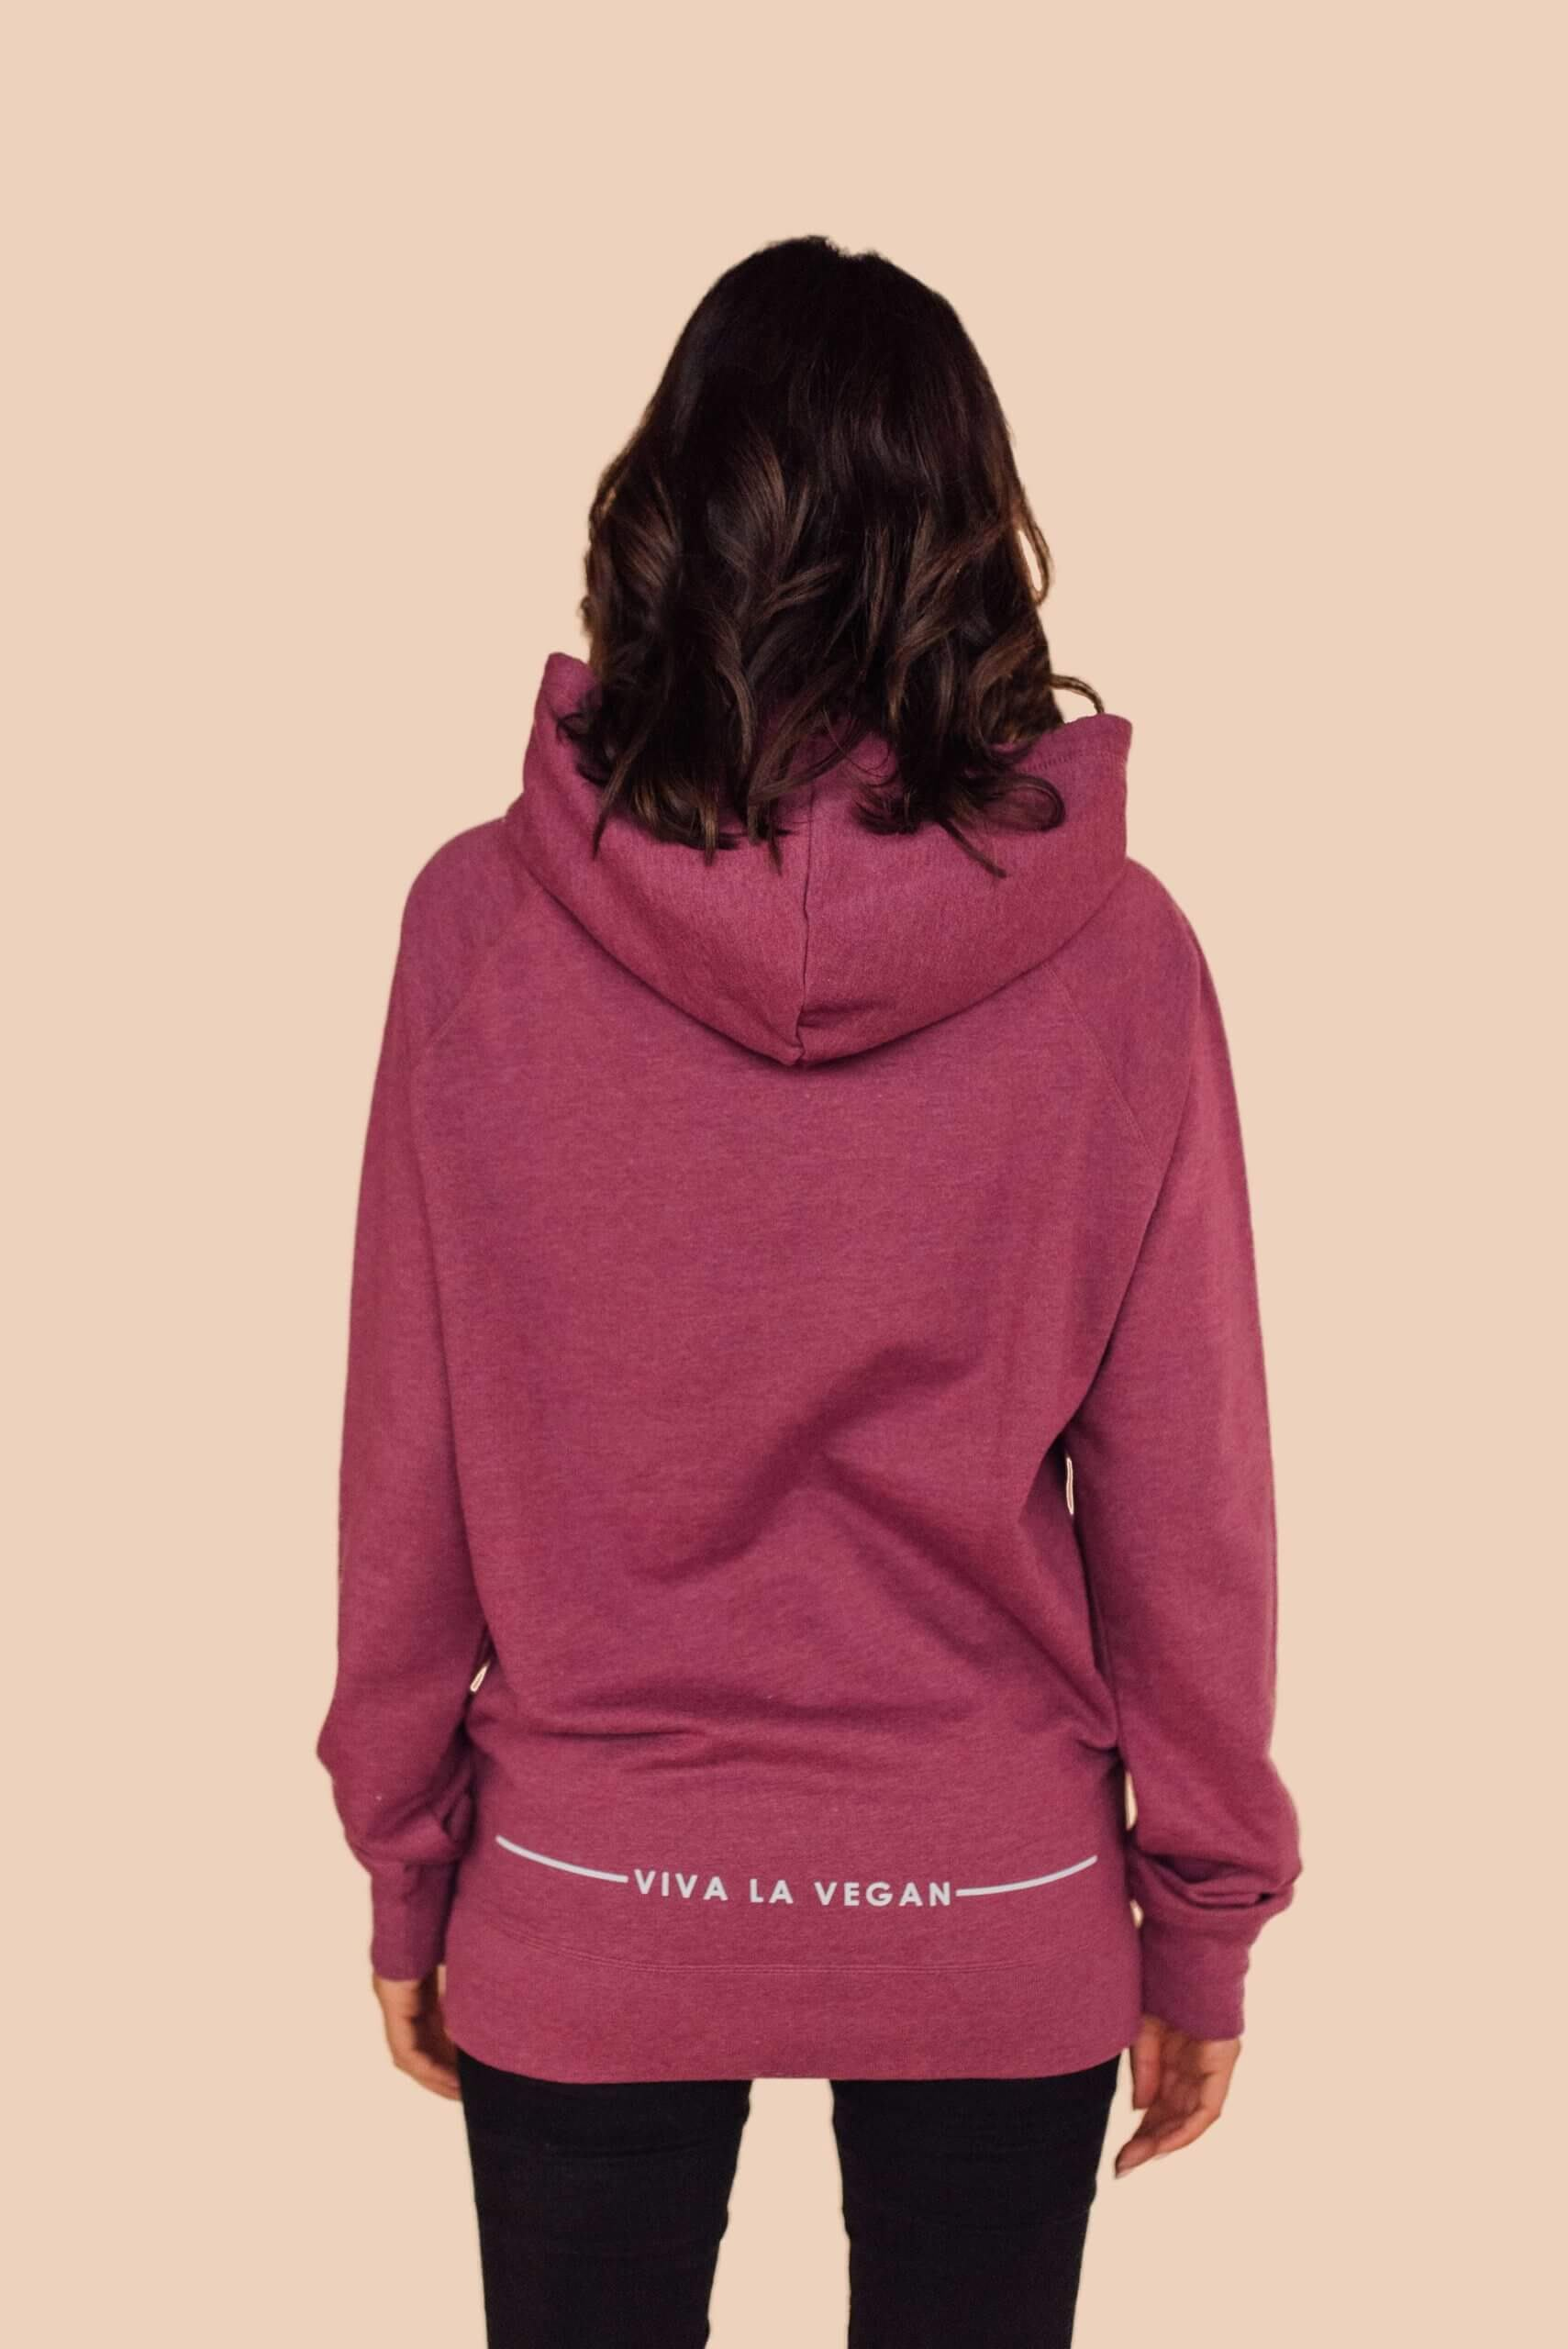 Vegan tribe hoodie back print detail by eco-ethical brand Viva La Vegan